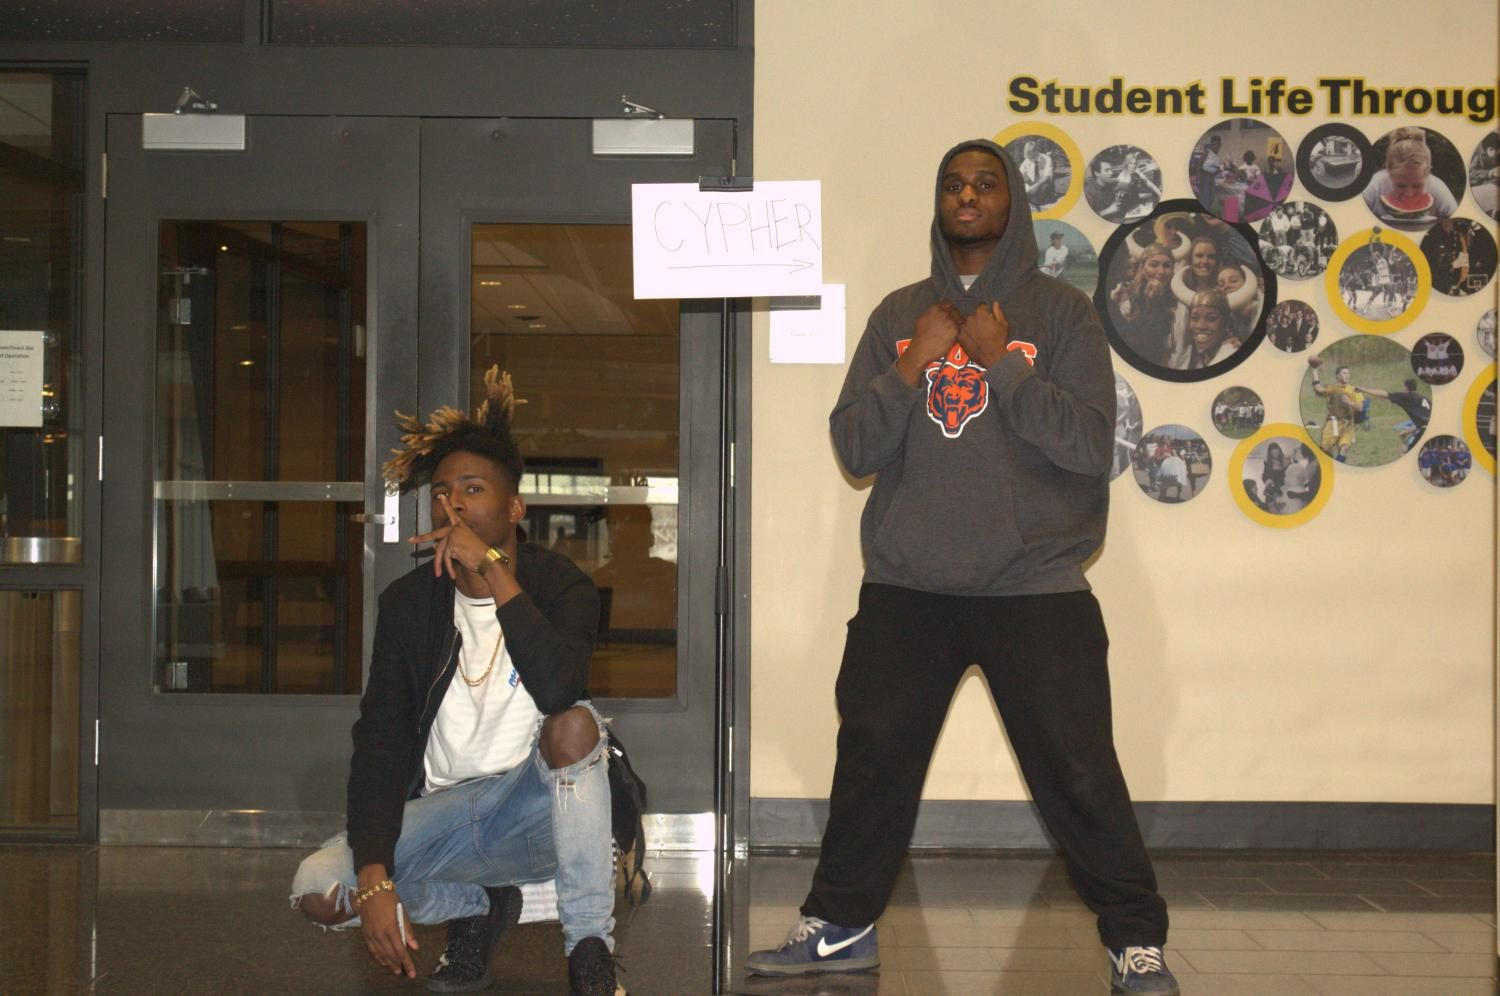 TJ Rosewood and Malik Washington started cypher events at NKU, where lyricists can take turns improvising as beats play in the background.